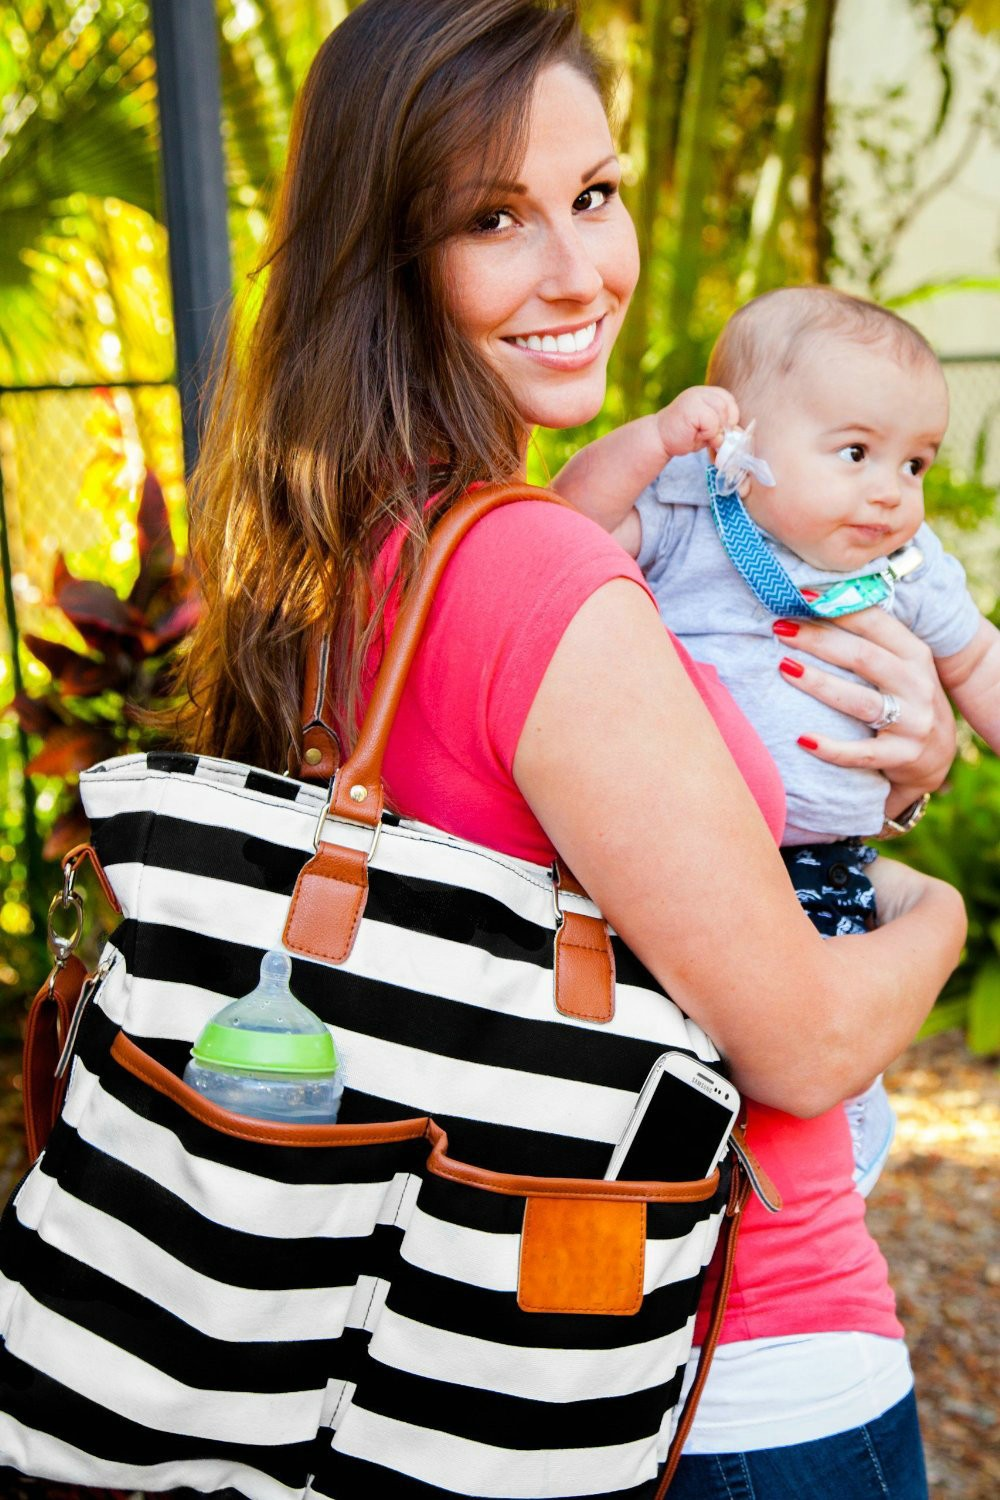 Diaper Bag for Stylish Moms, Black/White, Premium Cotton Canvas Tote Bag, 13 pockets Including Insulated Bottle